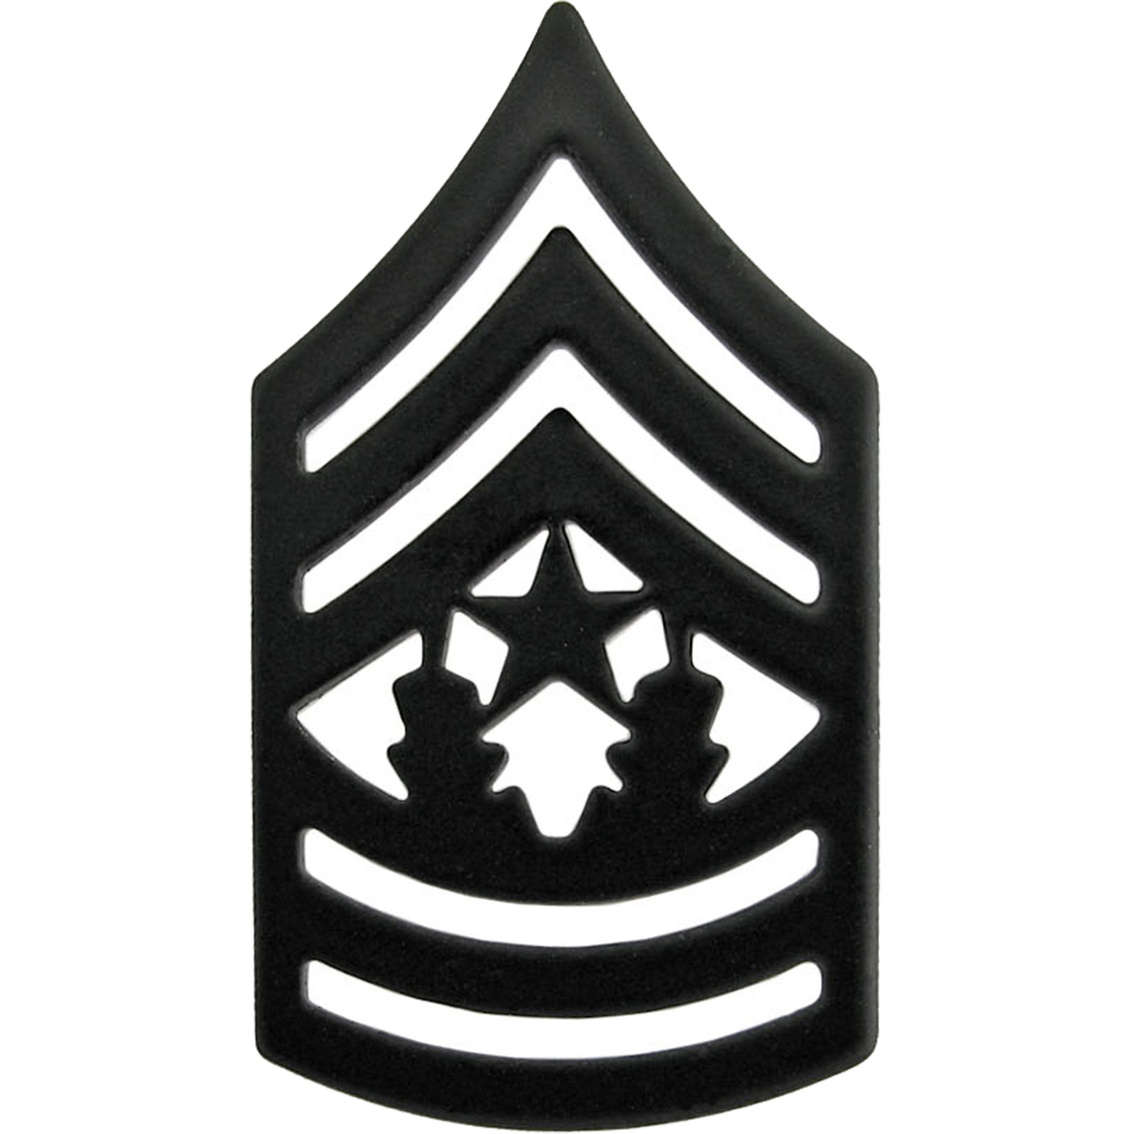 Army Csm Subdued Pin-on Rank | Subdued Pin-on Rank | Military | Shop ... clipart free